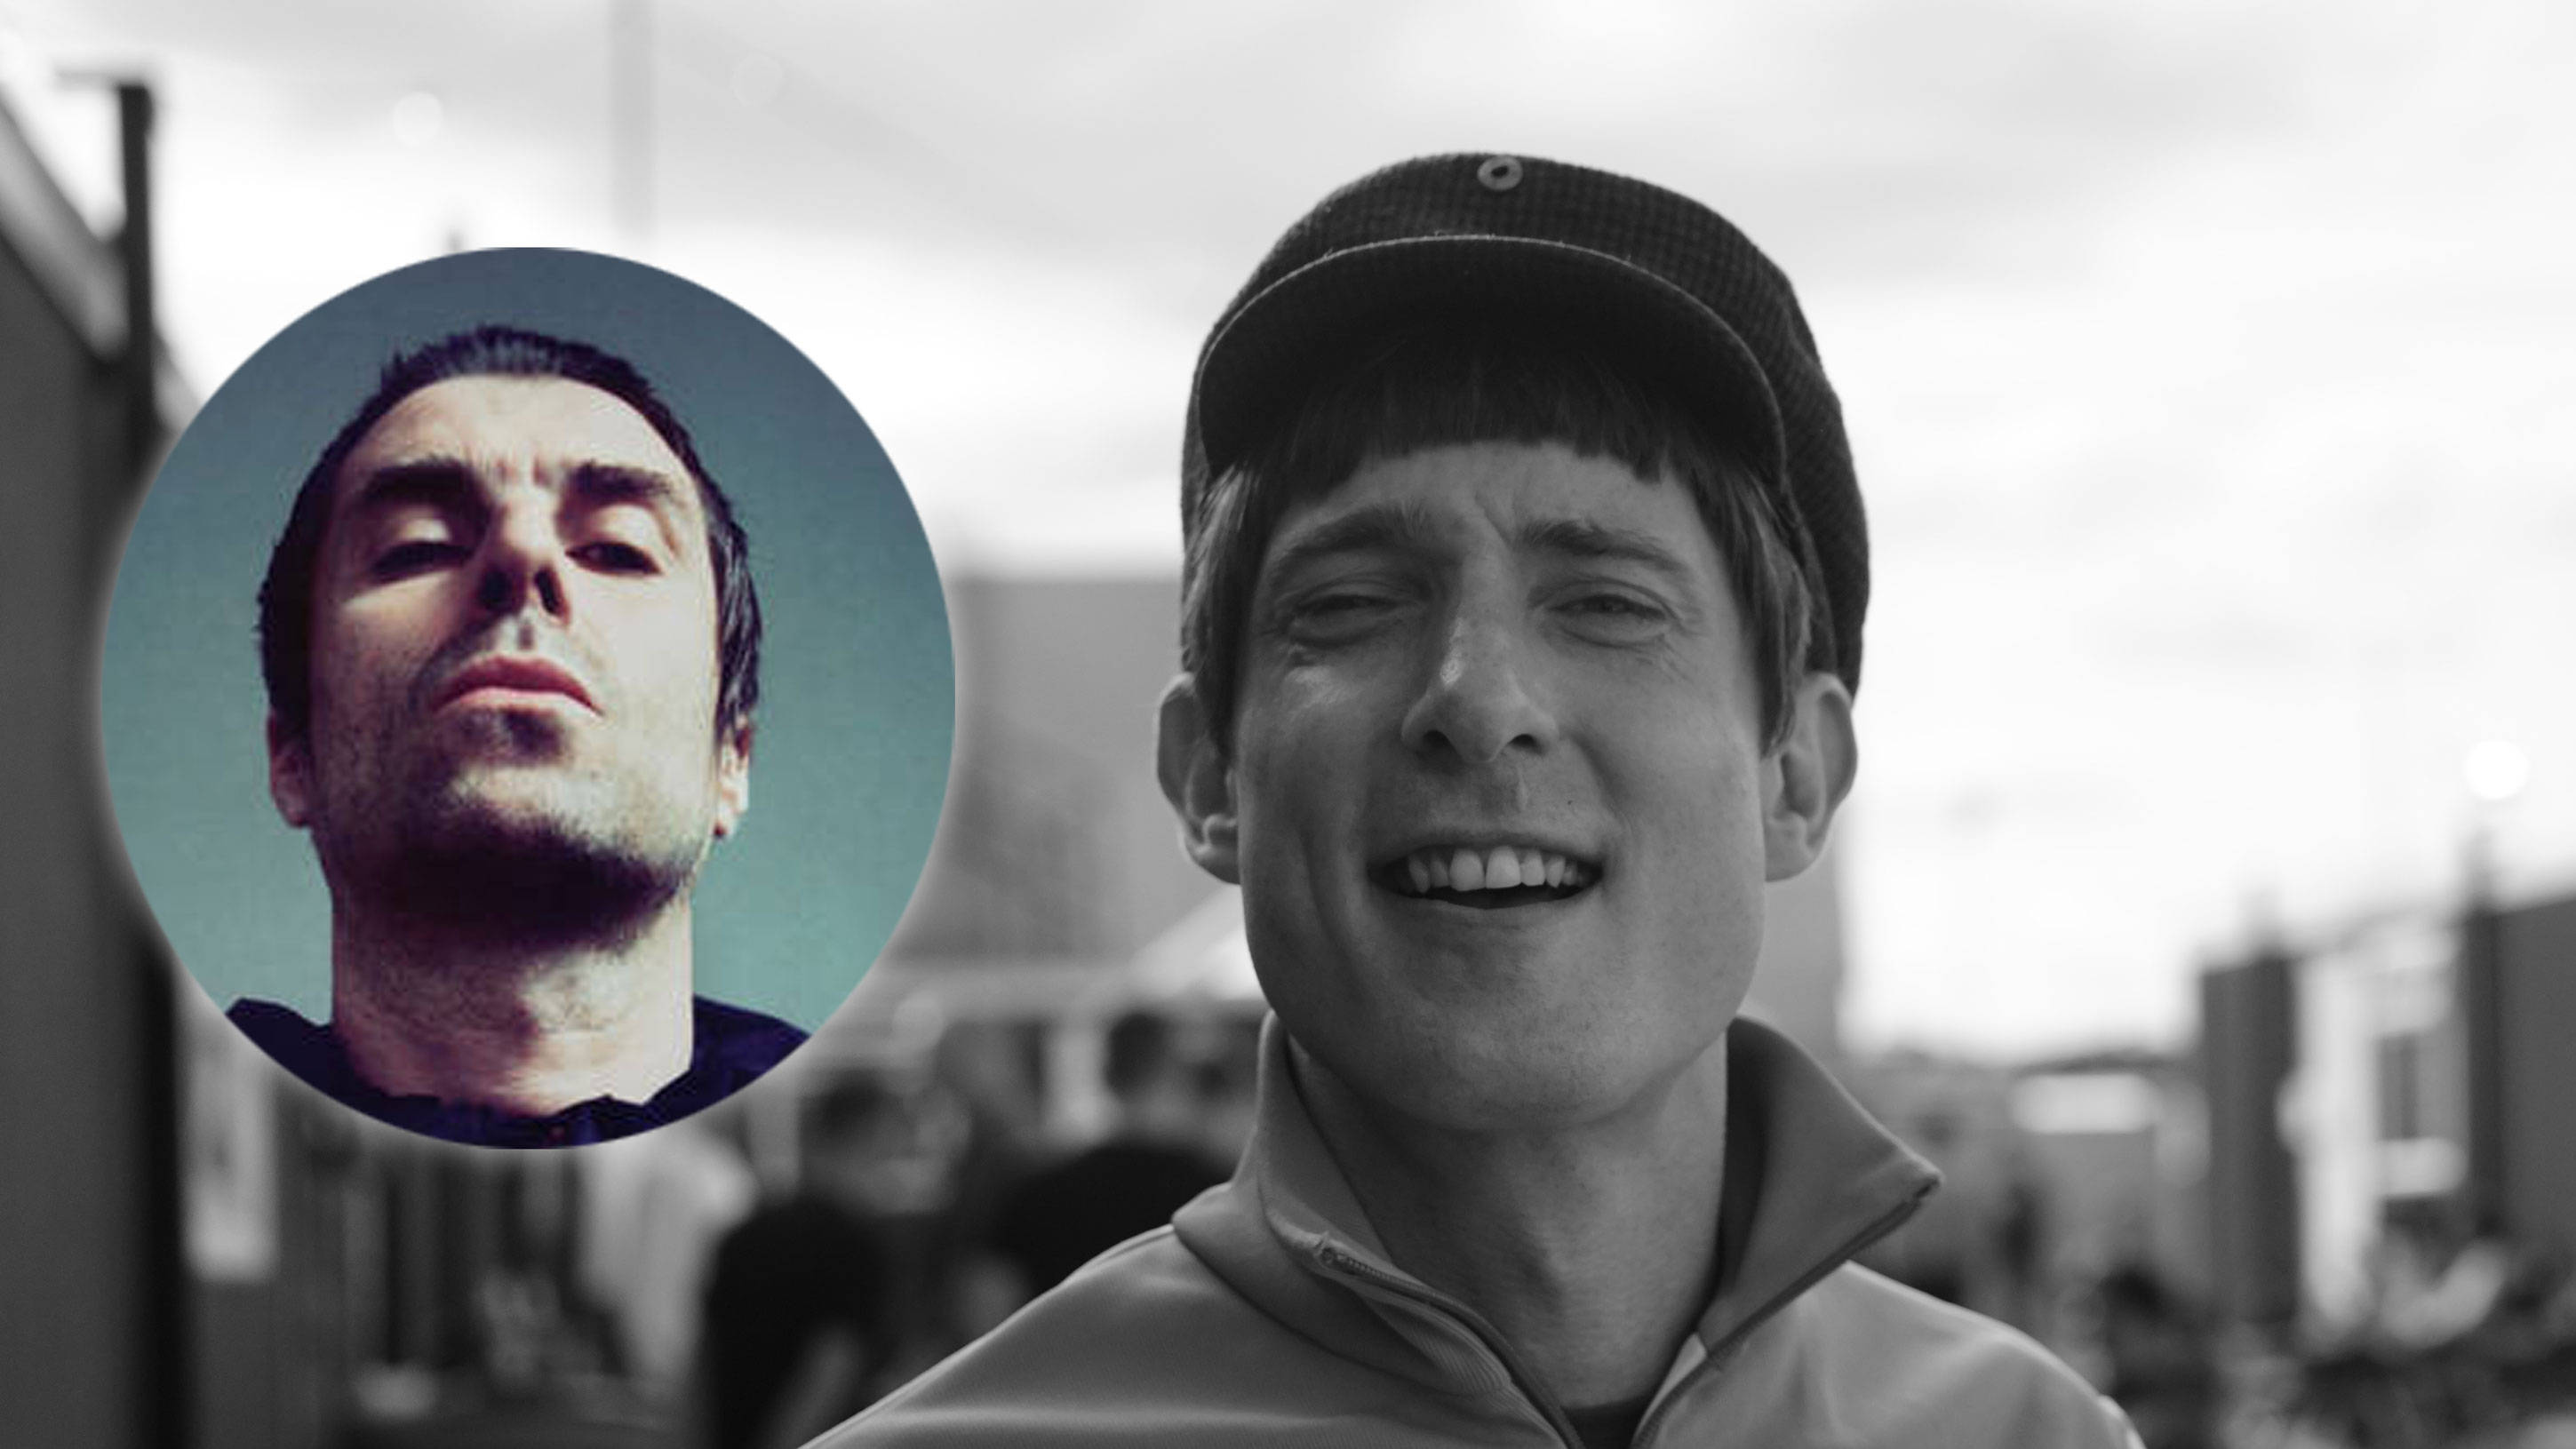 VIDEO: Gerry Cinnamon would vote Liam Gallagher for Prime Minister